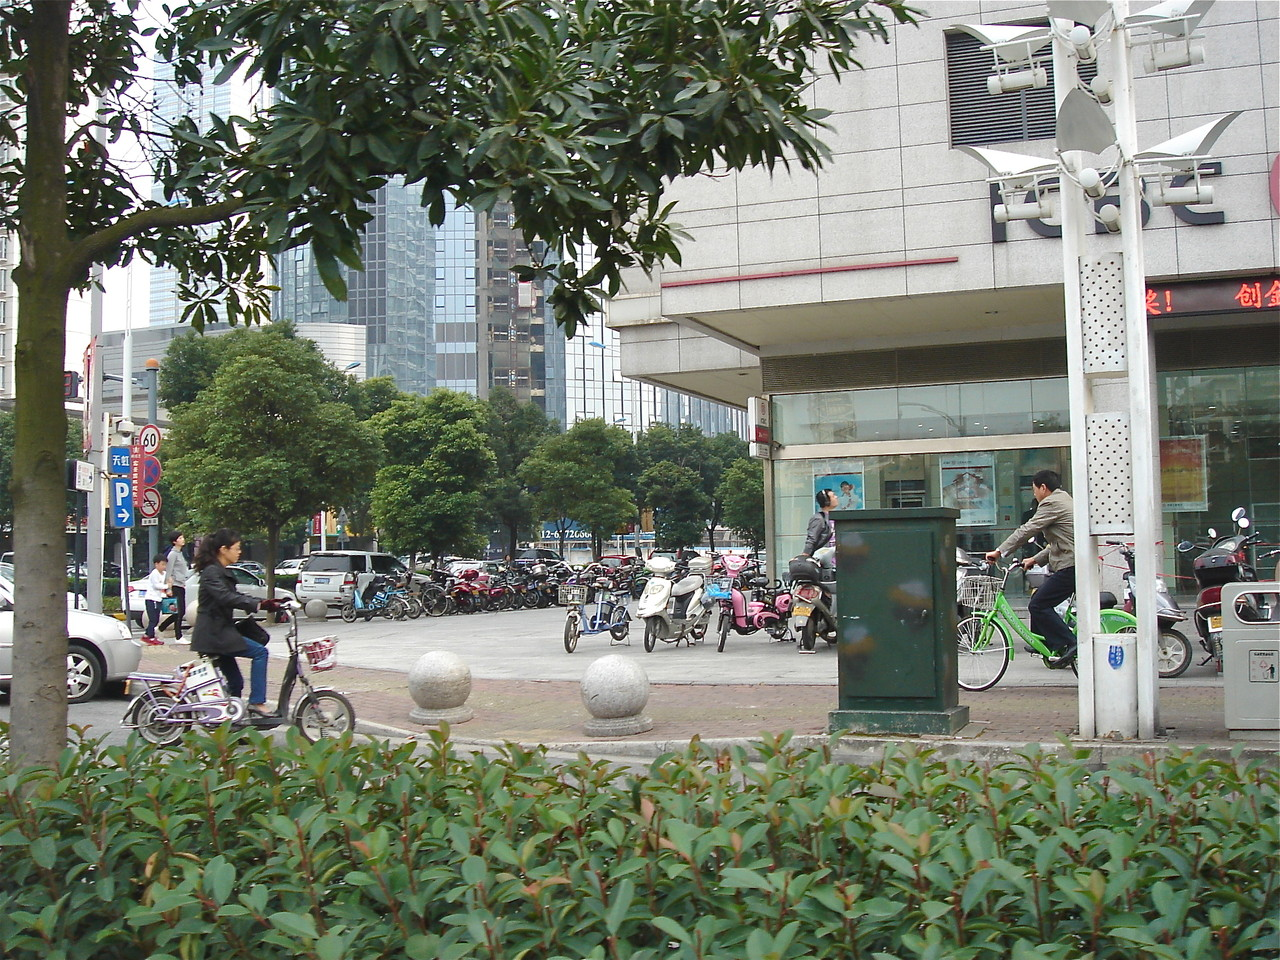 Motor bikes have replaced regular bikes, Suzhou